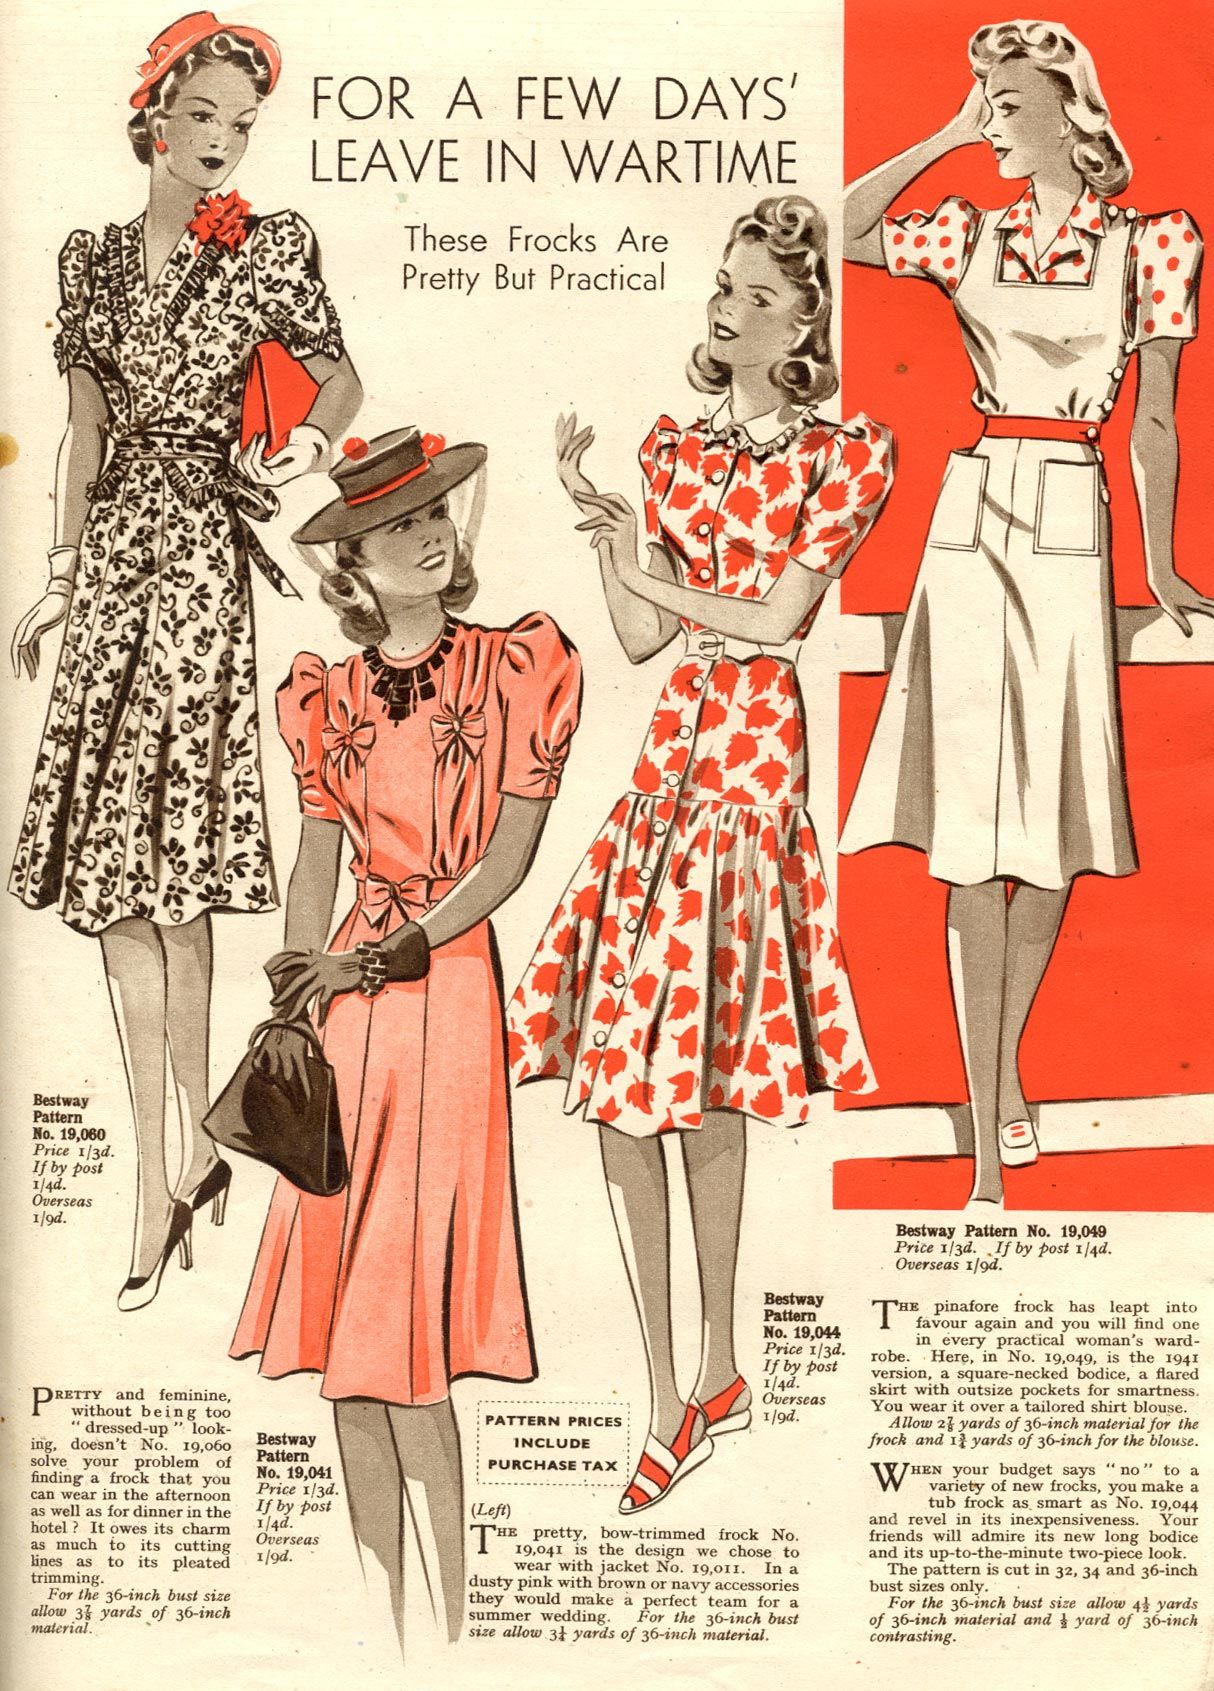 Post War Fashion Today 40s Fashion: For A Few Day's Leave In Wartime... (With Images